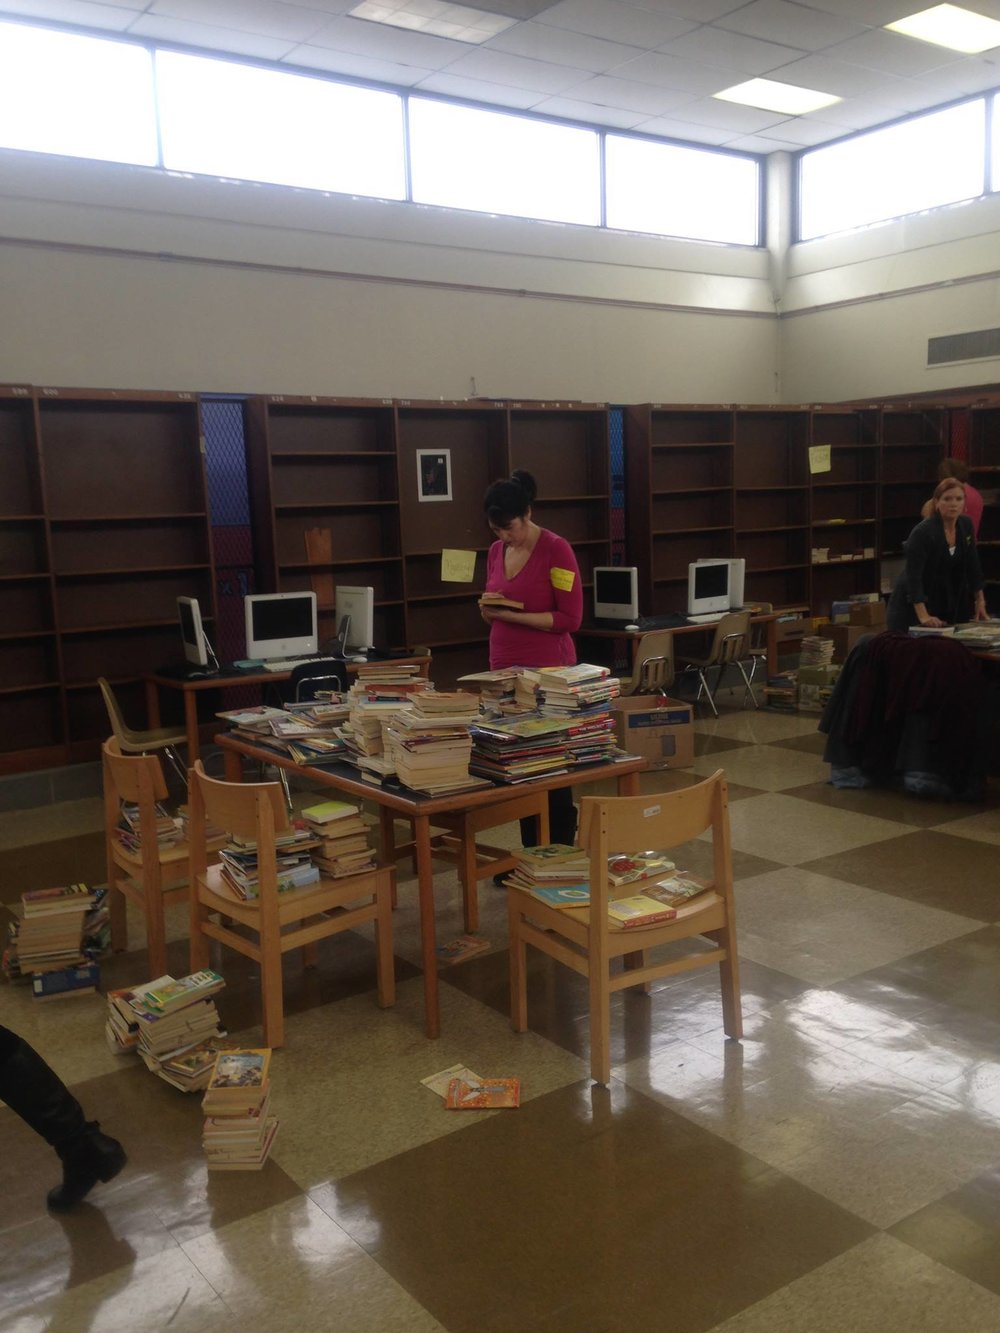 Figuring out how to build a library with no librarian